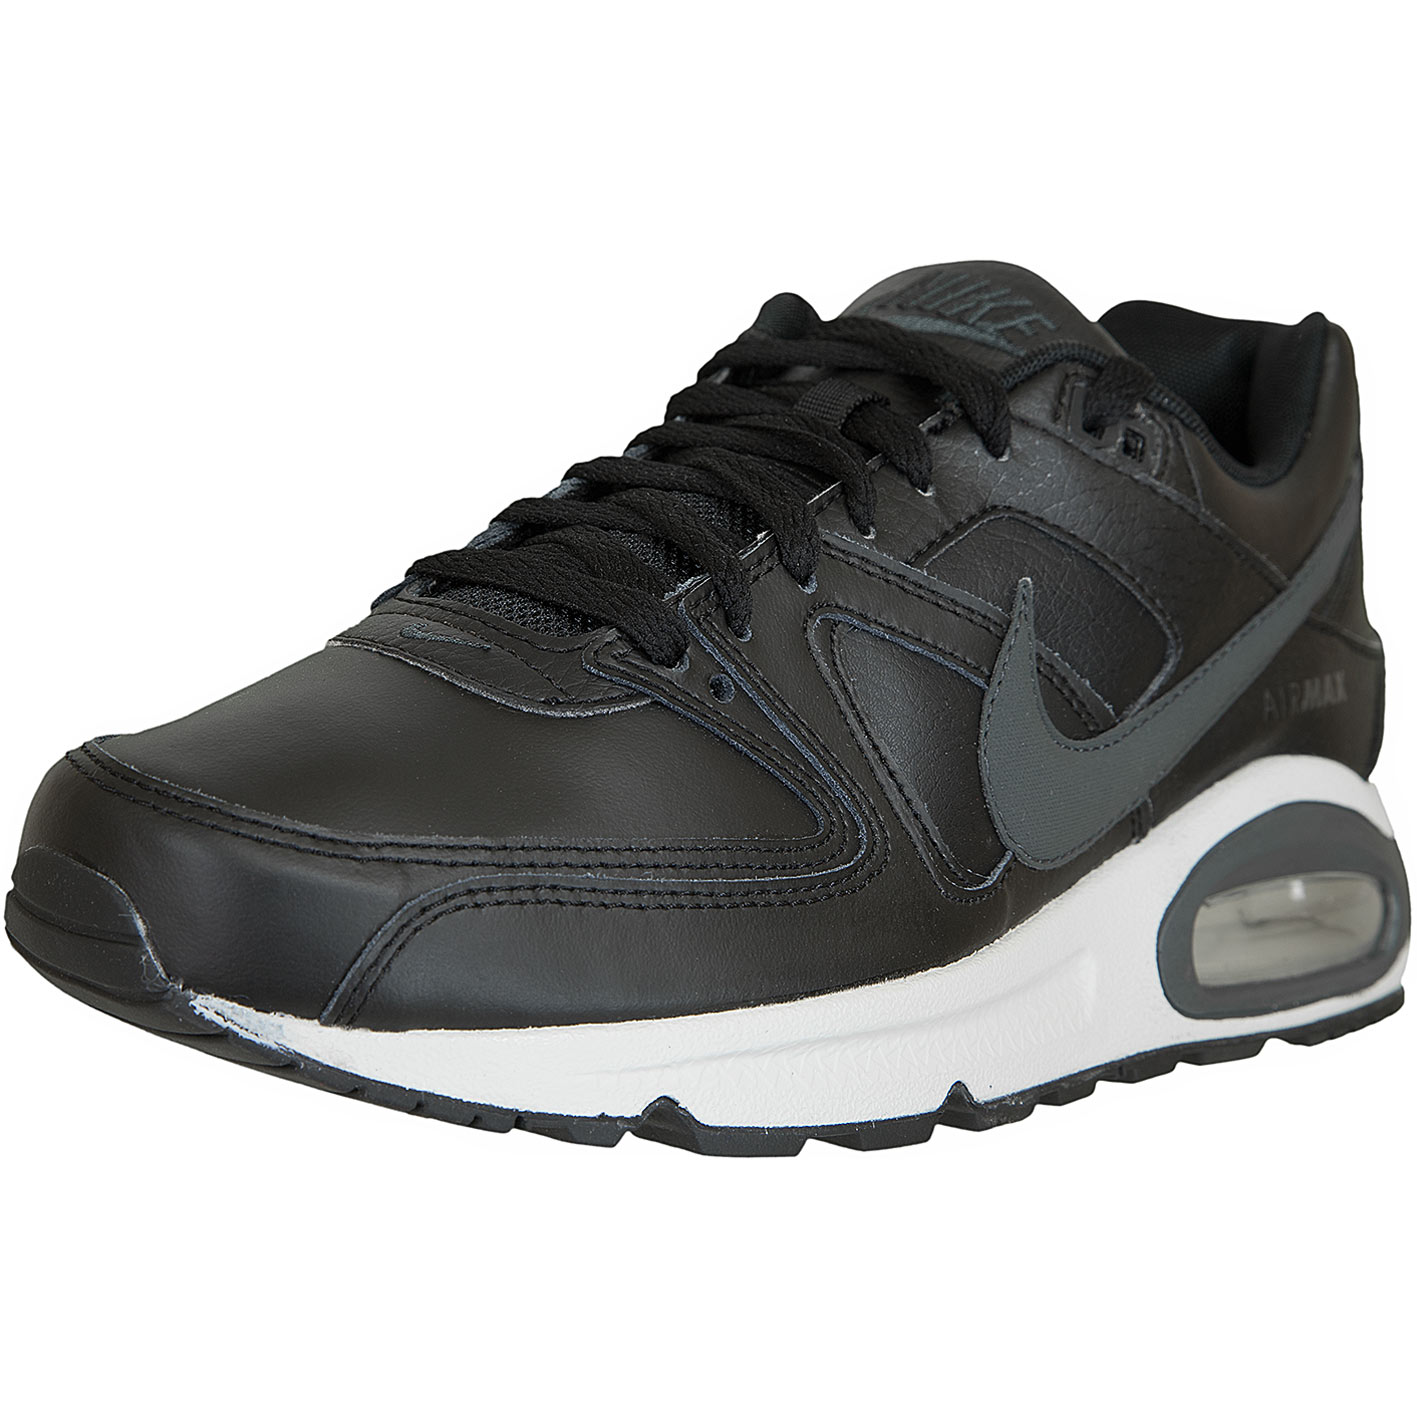 Nike Sneaker Air Max Command Leather schwarzanthrazit